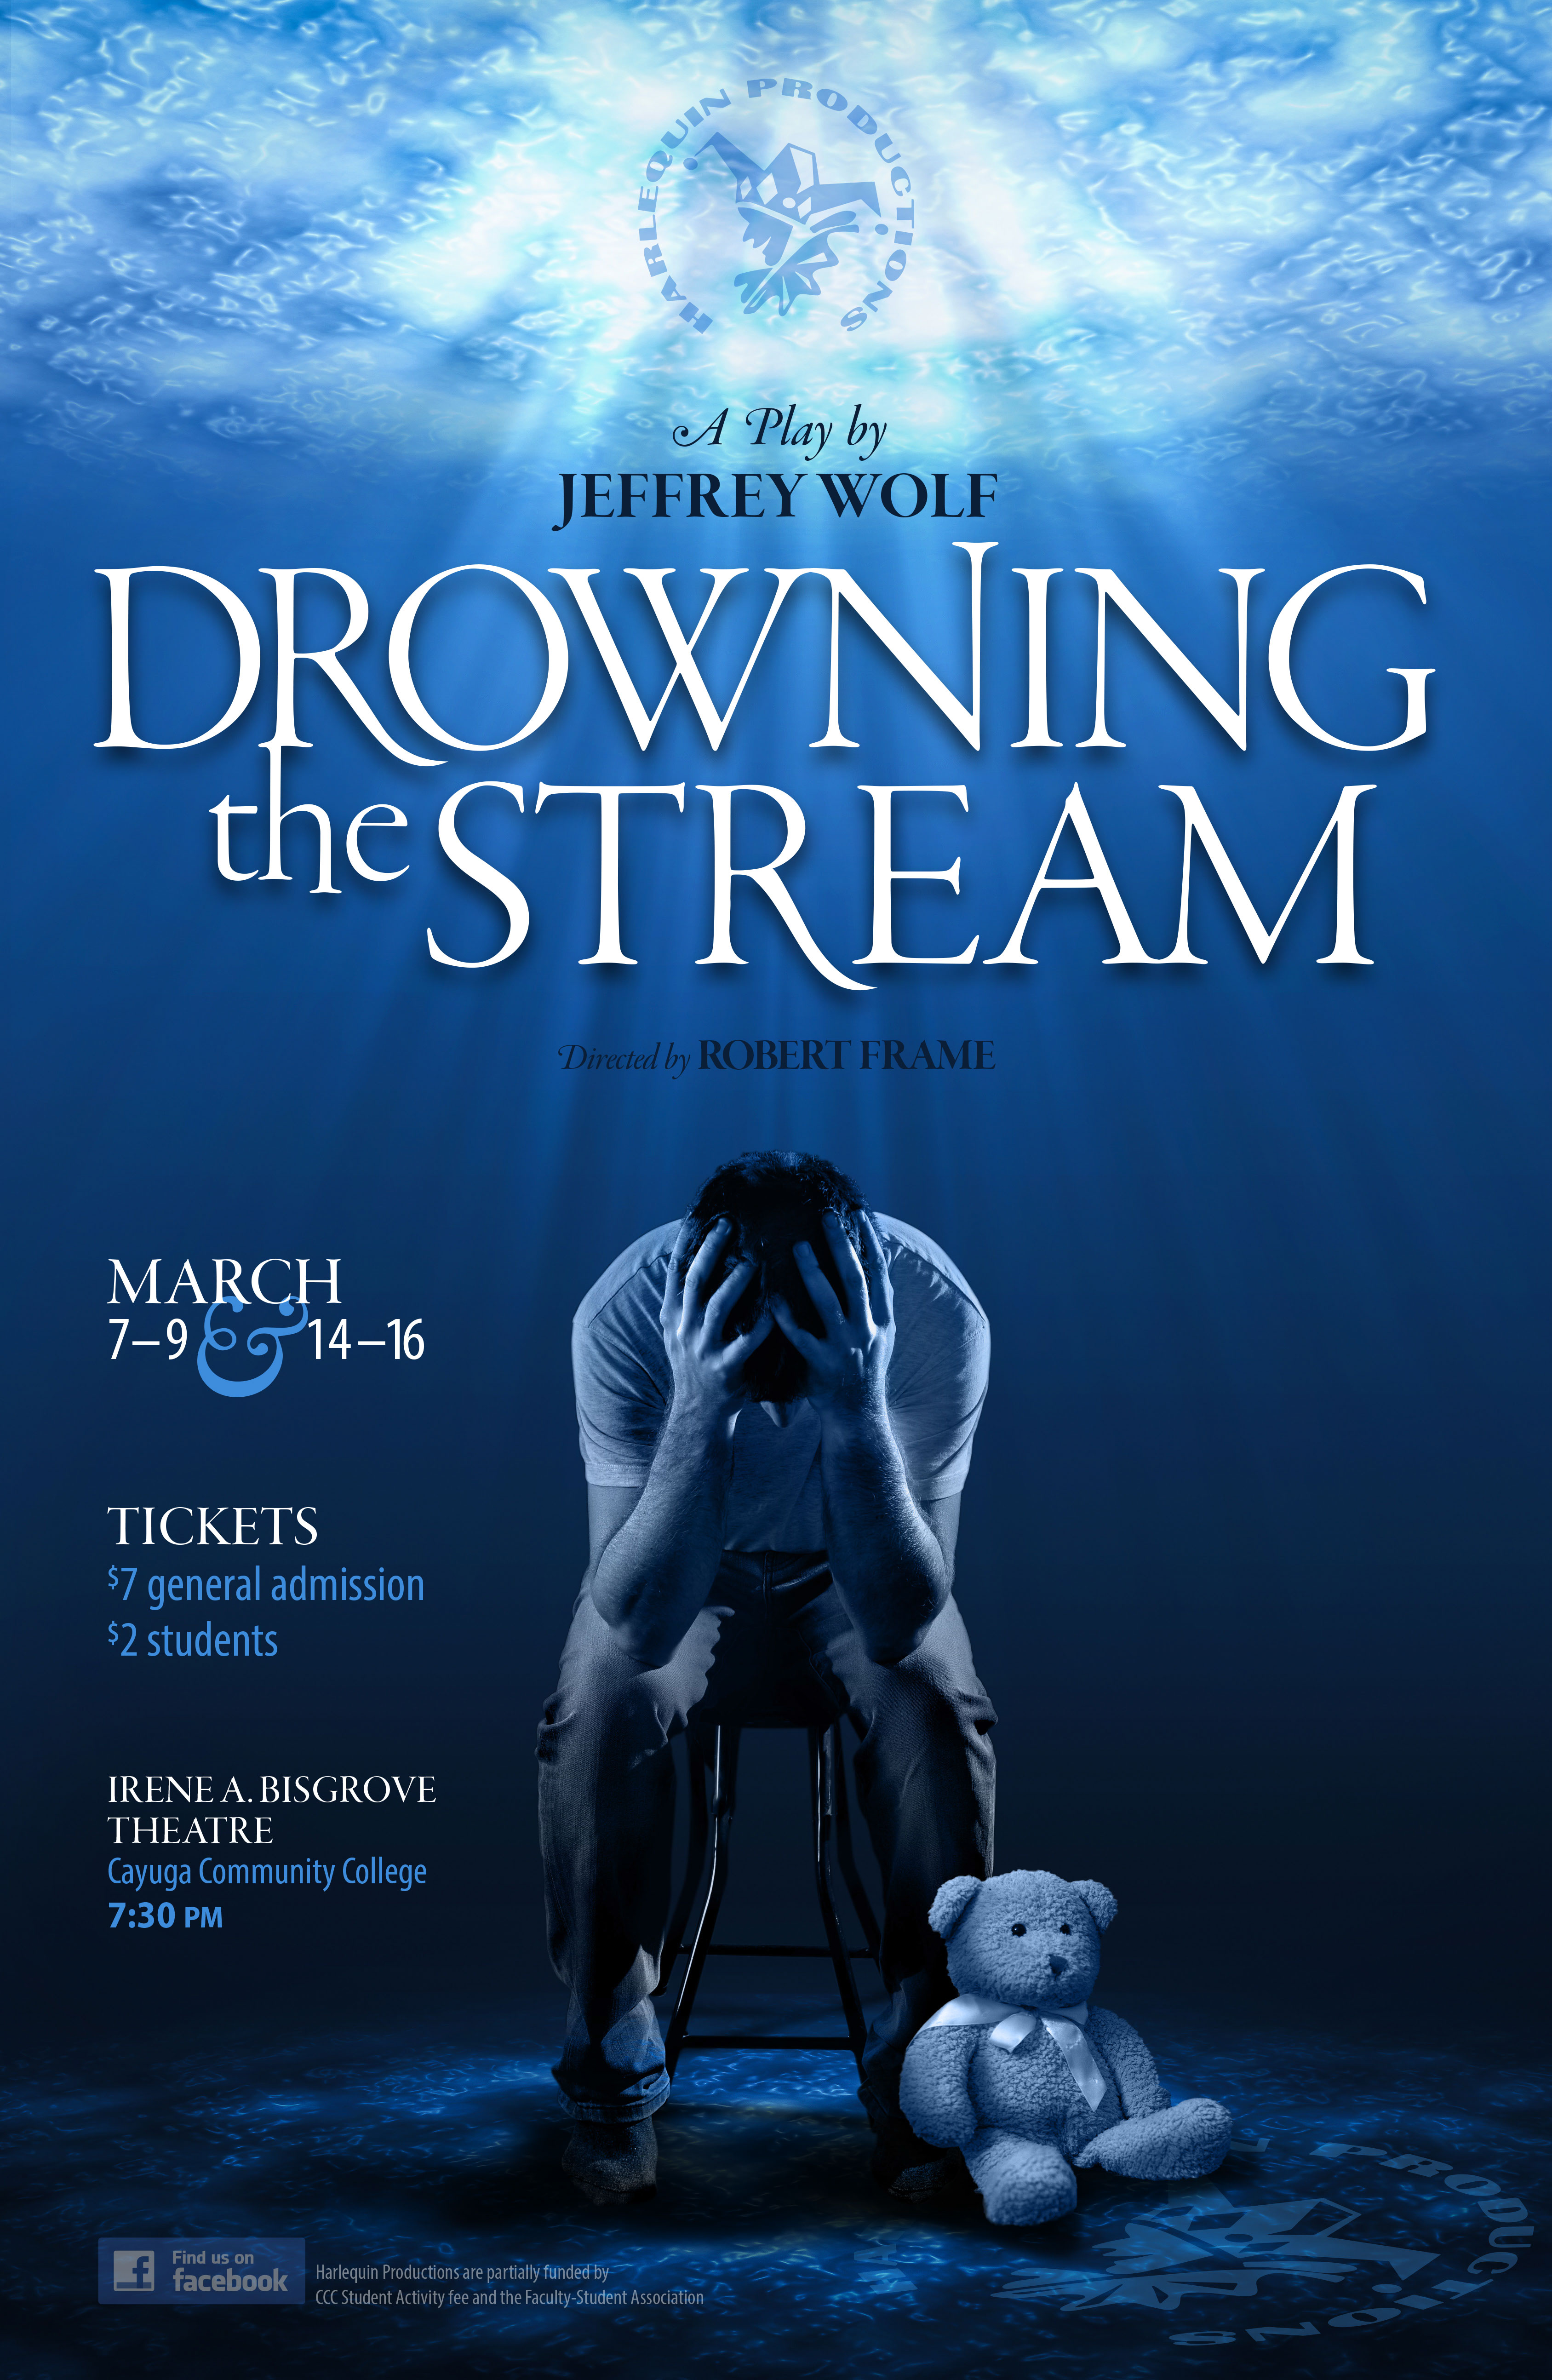 Drowning the Stream poster